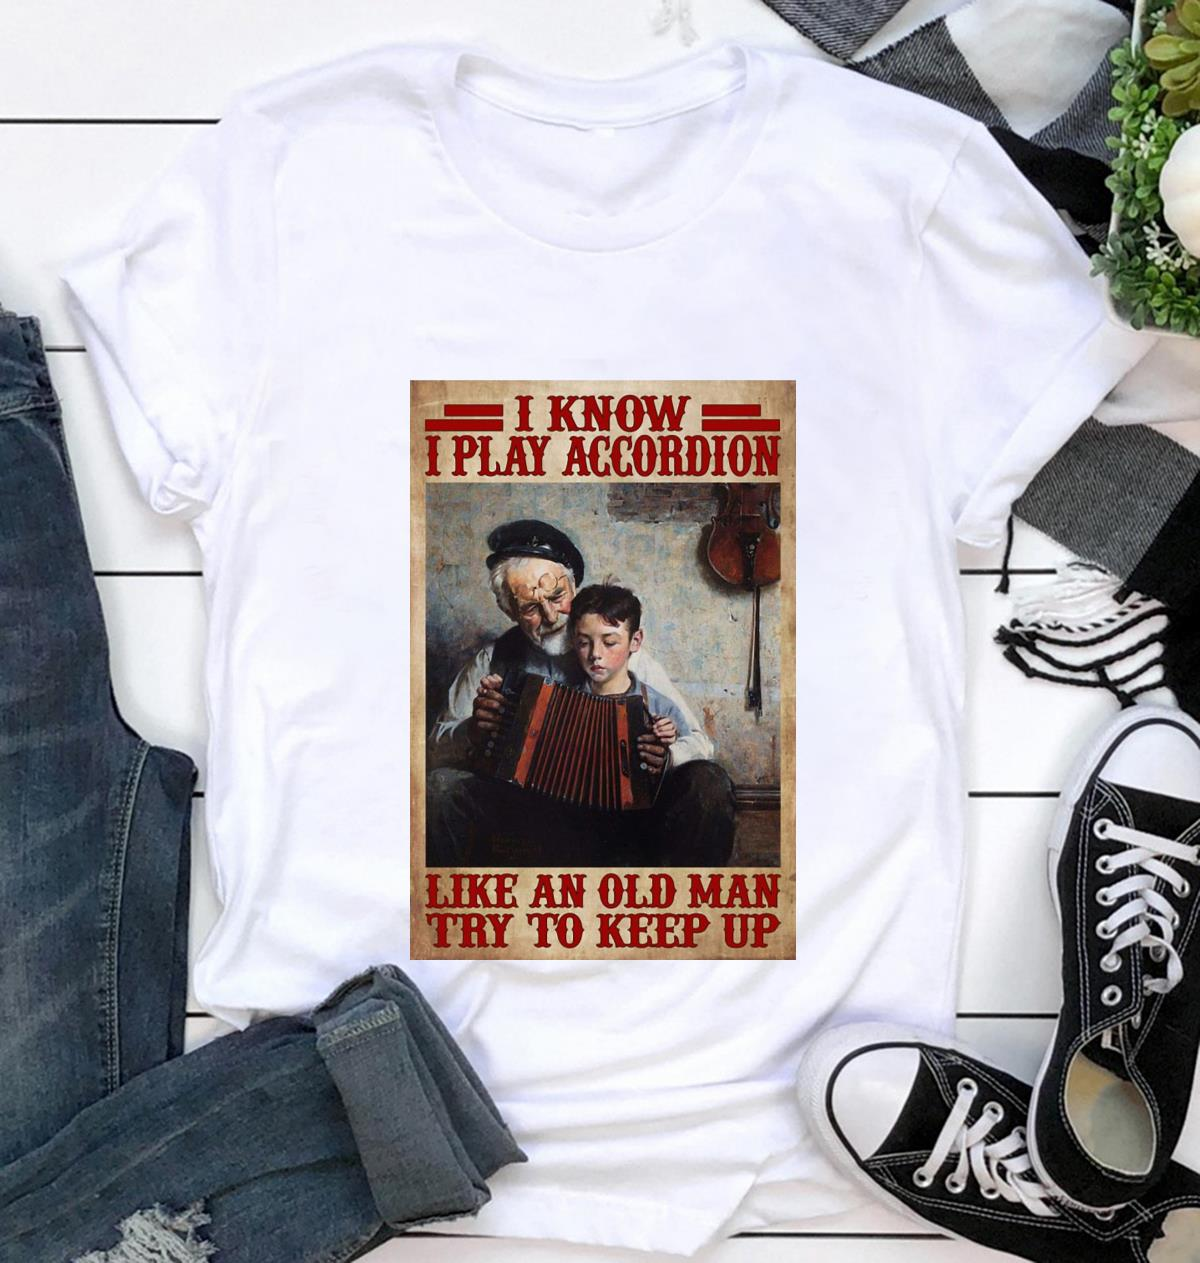 I know I play accordion like an old man try to keep up poster t-shirt